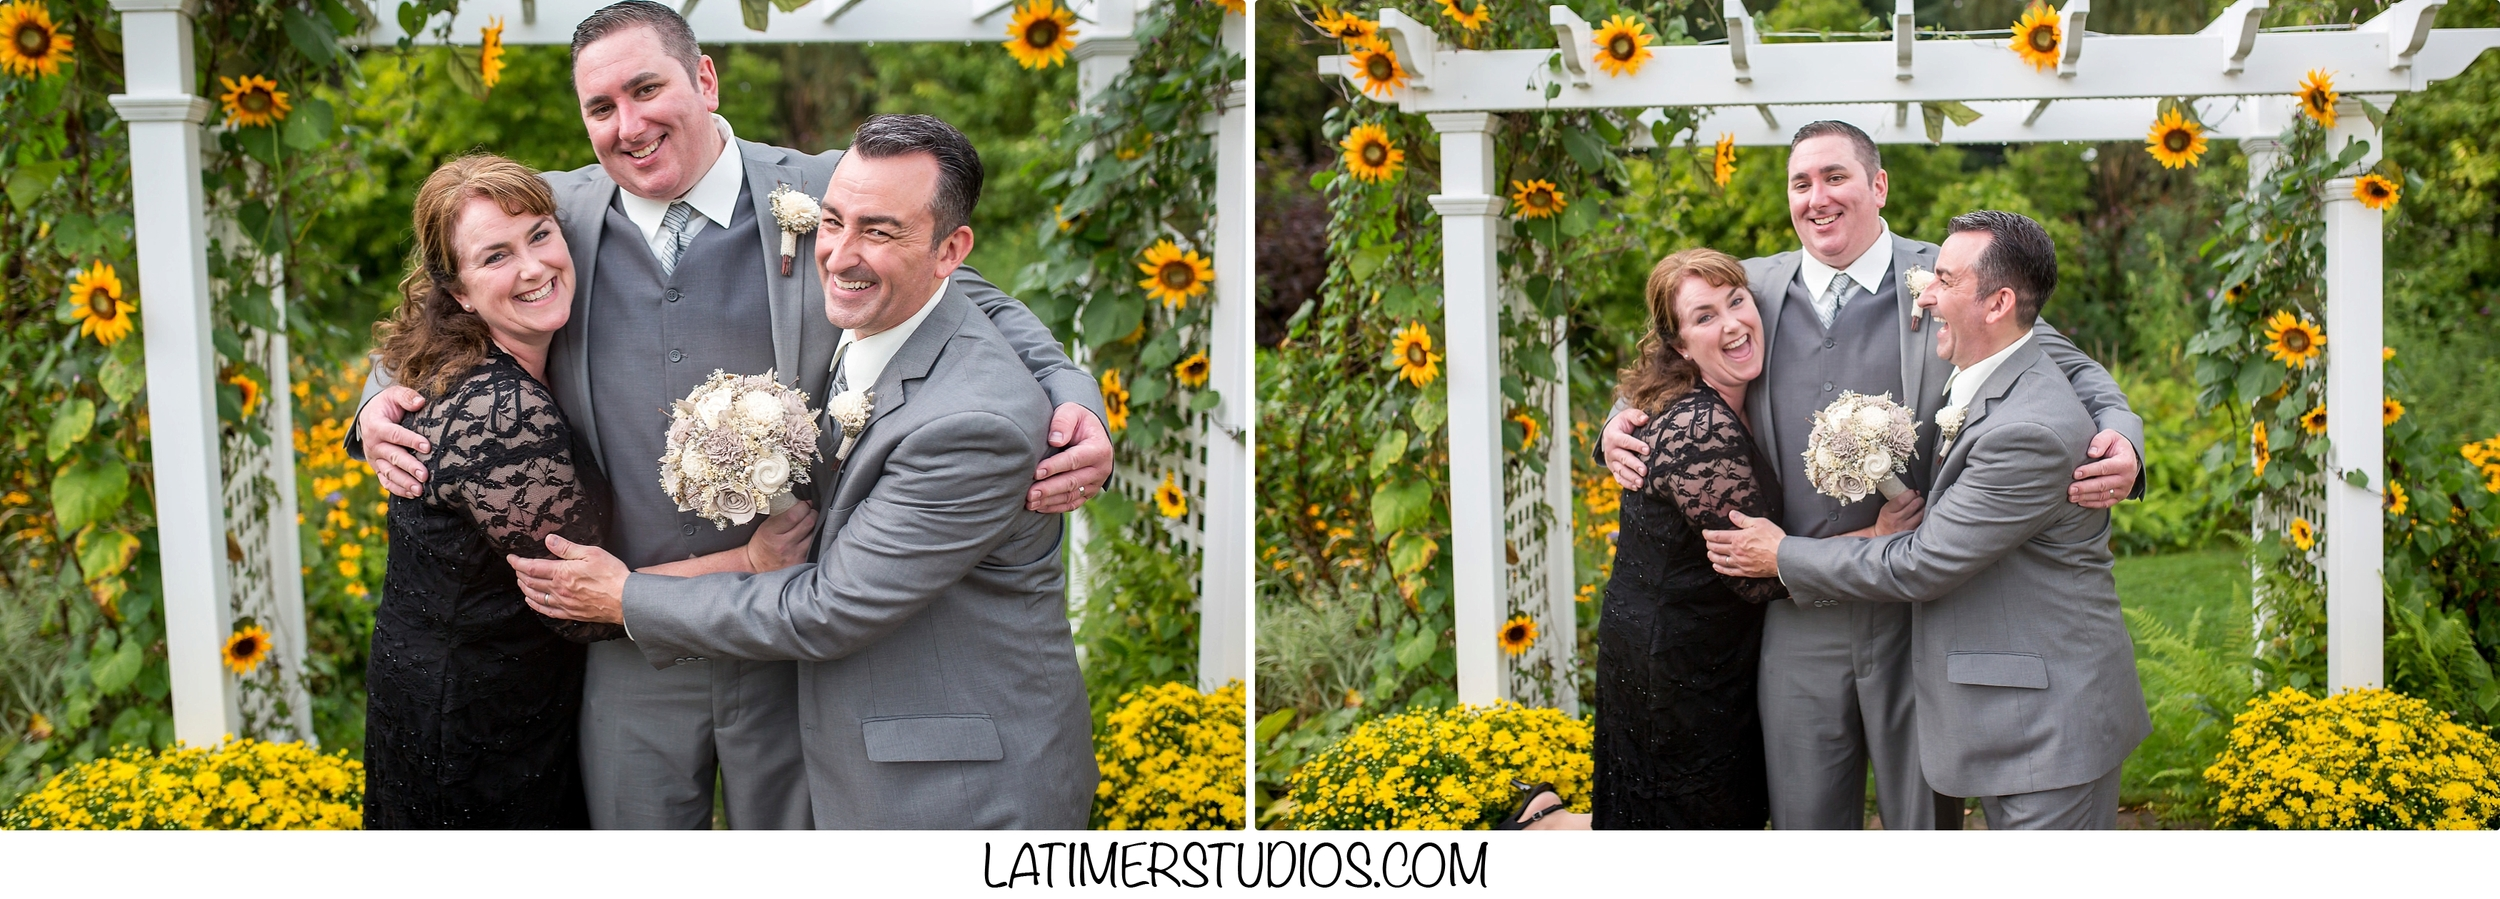 Latimer Studios Photography capturing  family pictures in the garden at a wedding at Mile Away Restaurant in Milford NH